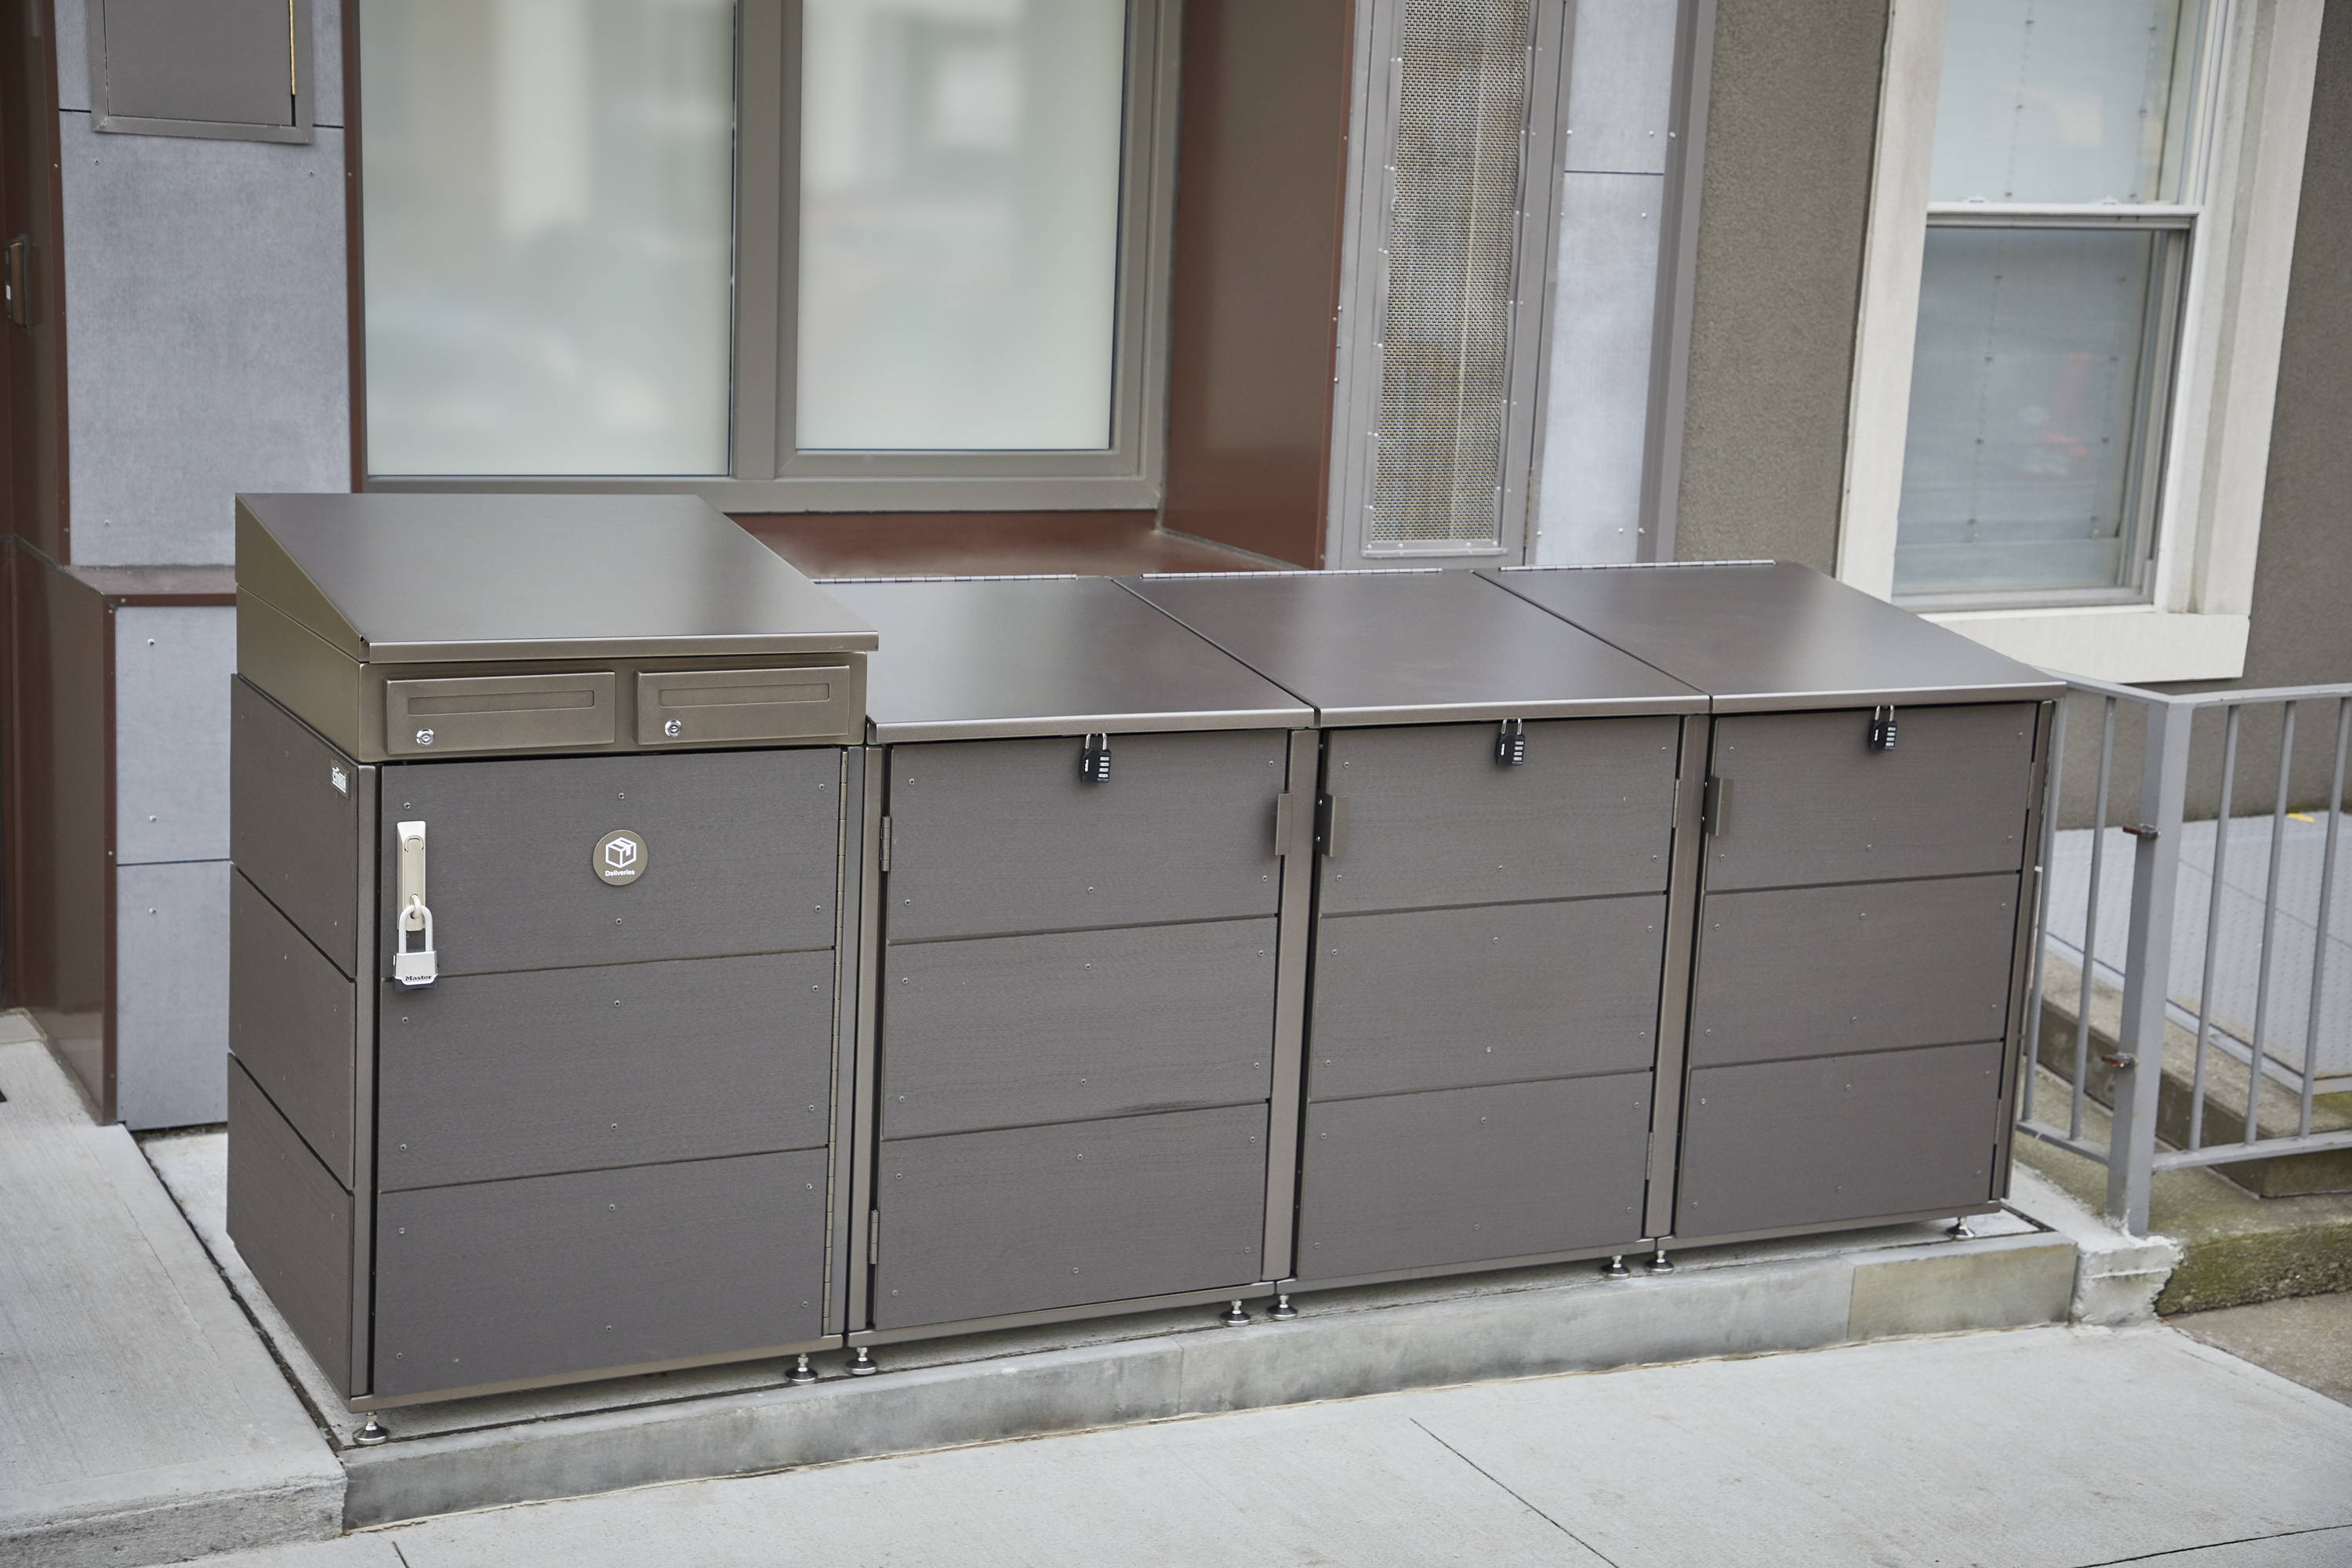 Package Delivery Lock Box For Home Parcel Drop Box Citibin